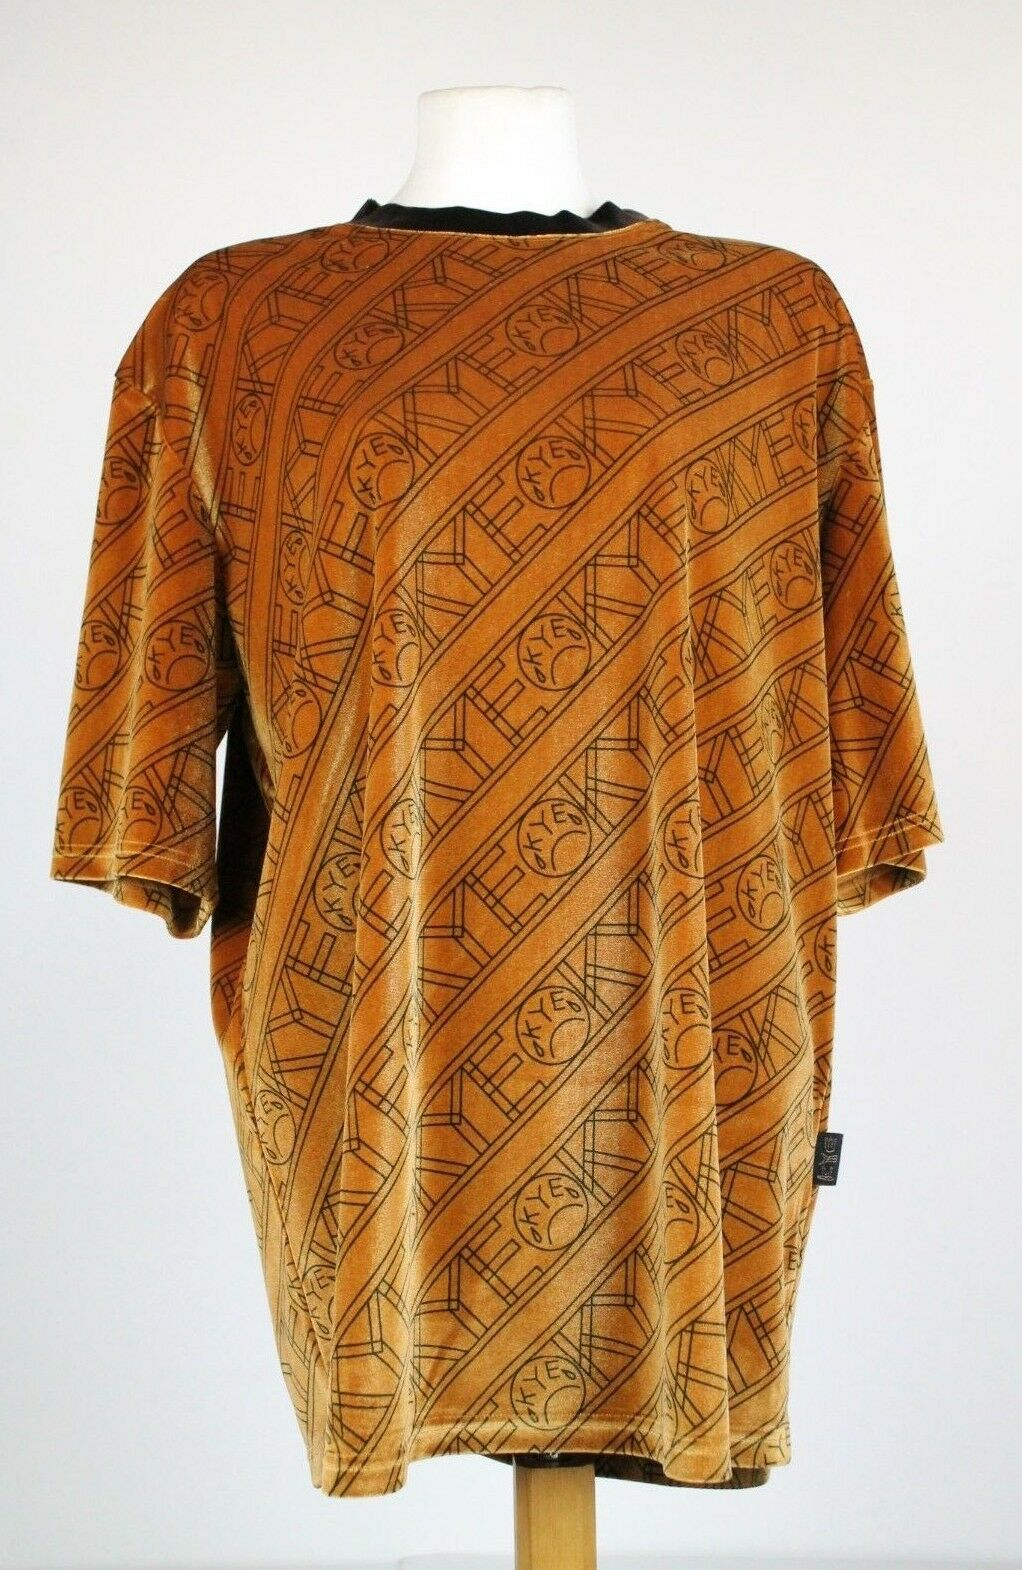 KYE gold Velour Over Sized T-Shirt, RRP